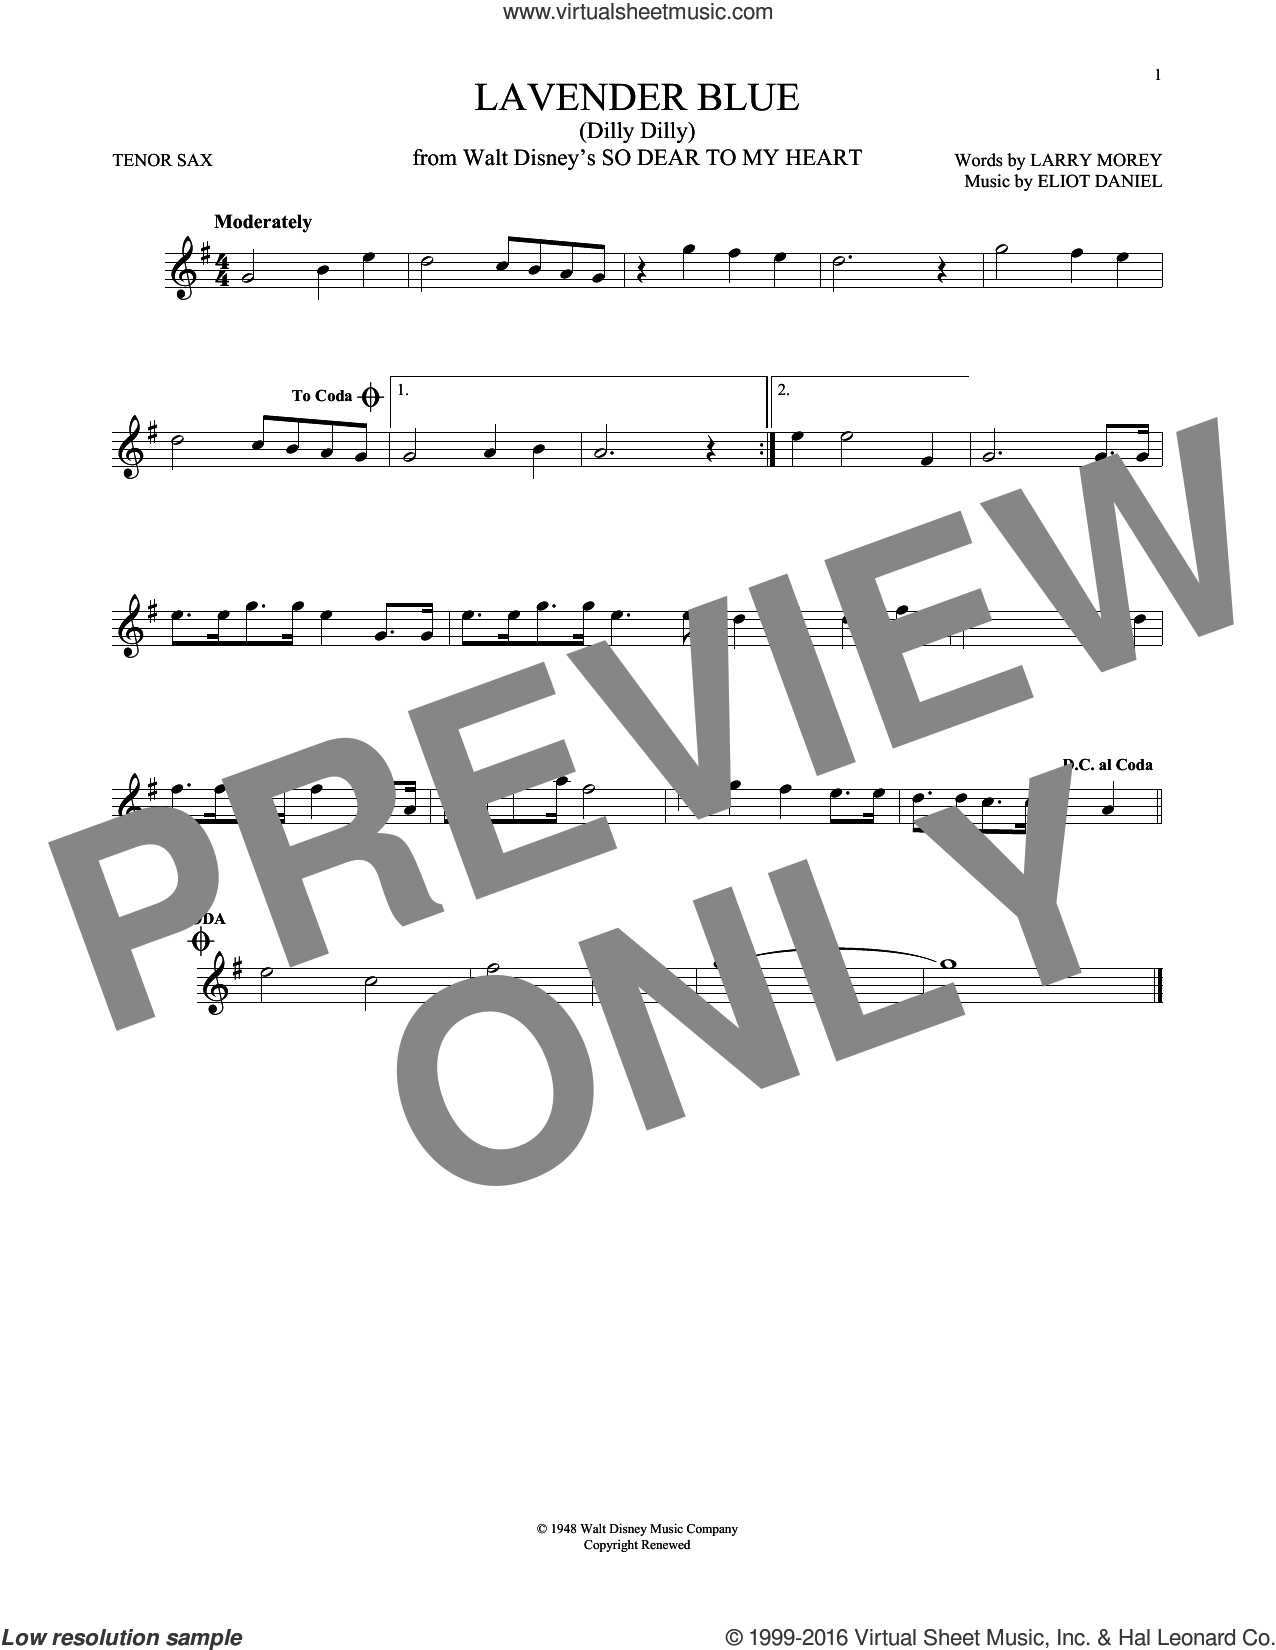 Lavender Blue (Dilly Dilly) sheet music for tenor saxophone solo by Sammy Turner, Eliot Daniel and Larry Morey, intermediate skill level